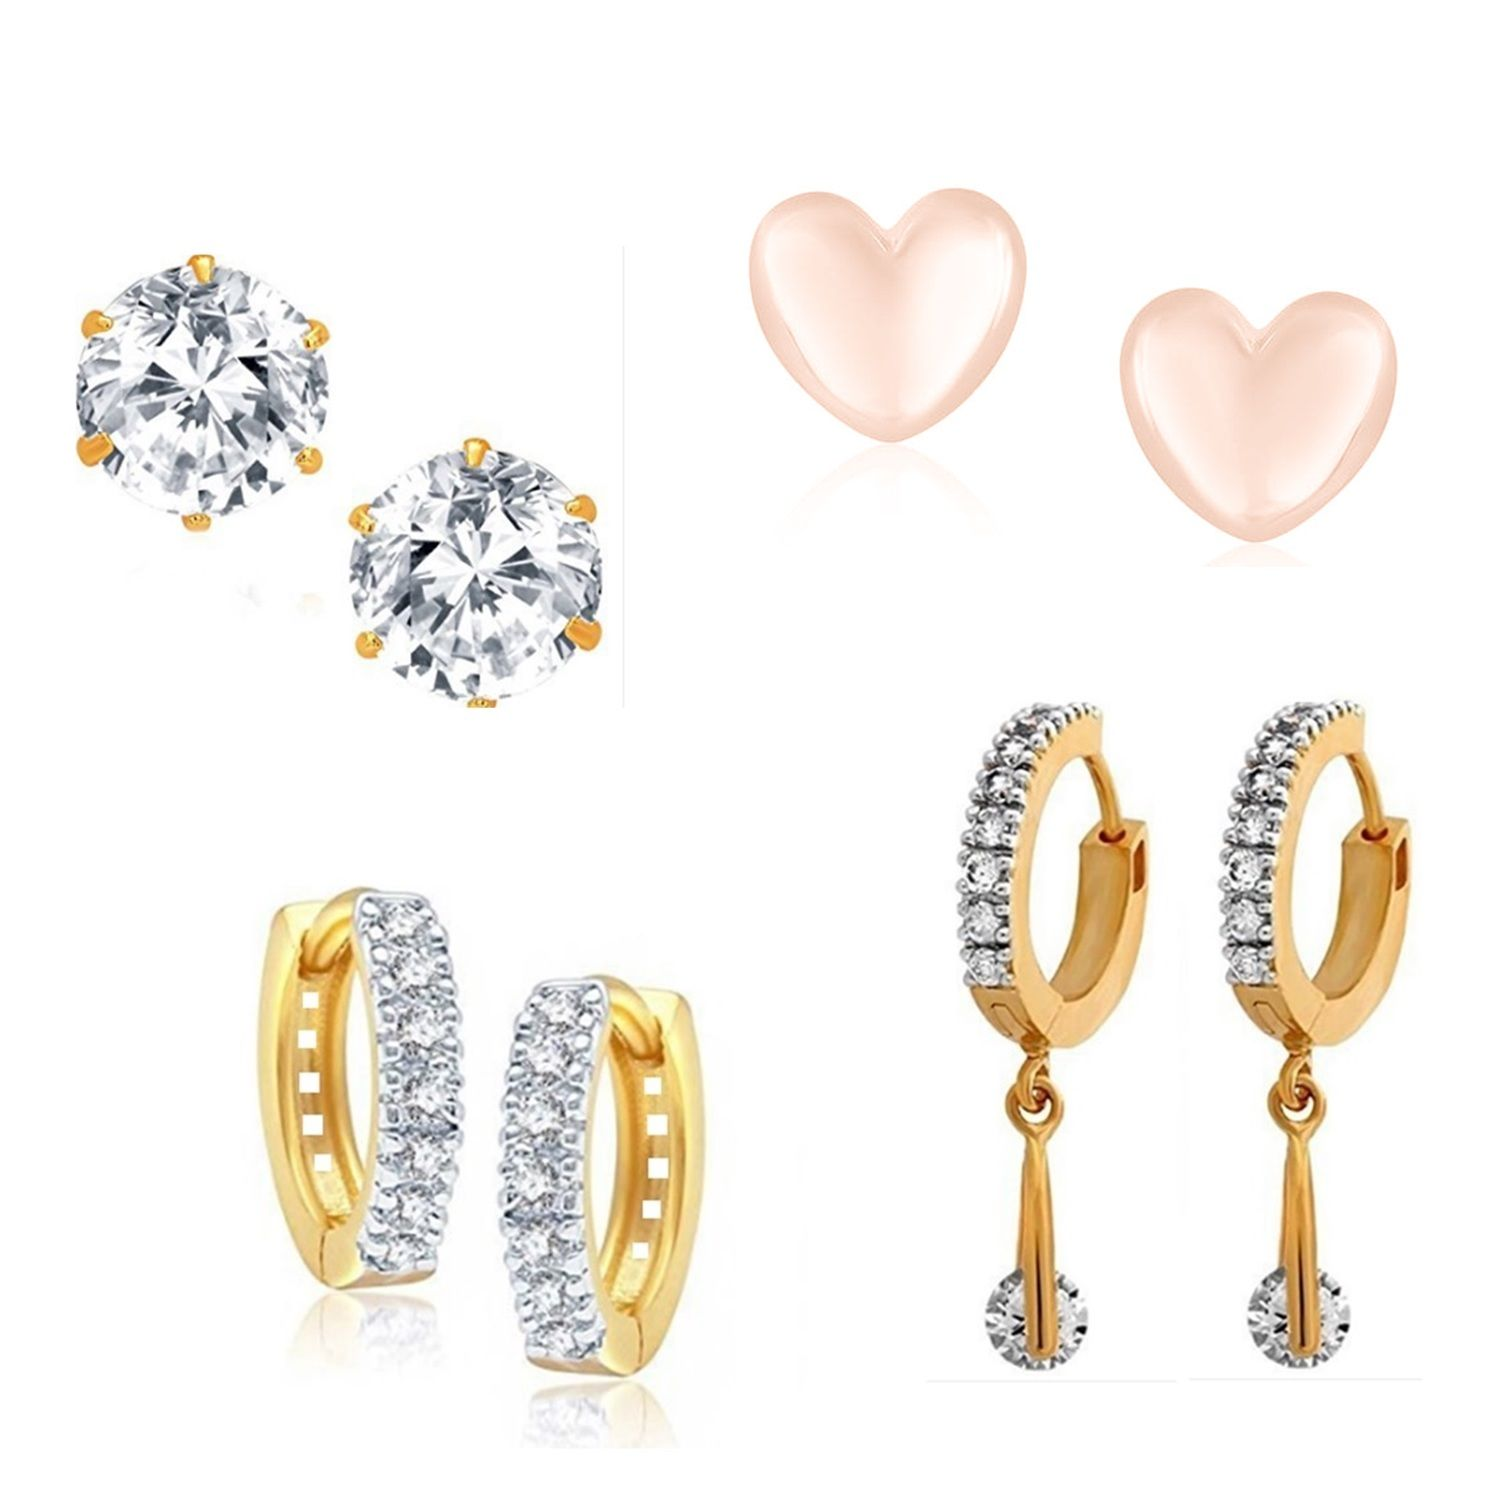 GoldNera Women Stud Earrings Combo With Traditional Bali